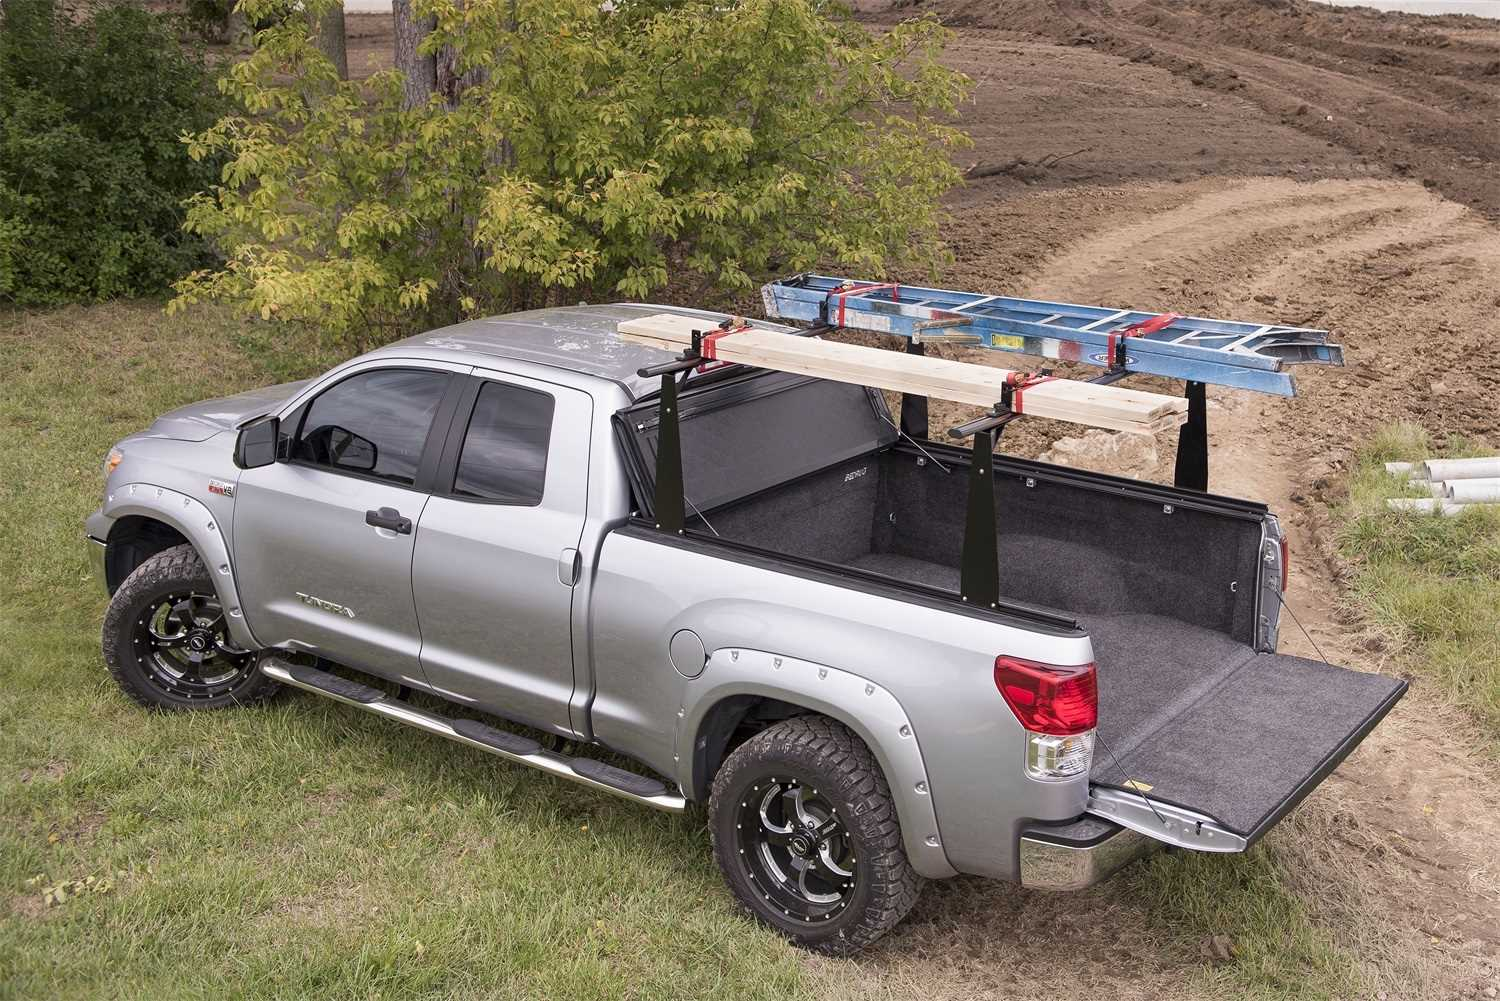 72426BT Bak Industries BAKFlip CS-F1 Hard Folding Truck Bed Cover/Integrated Rack System